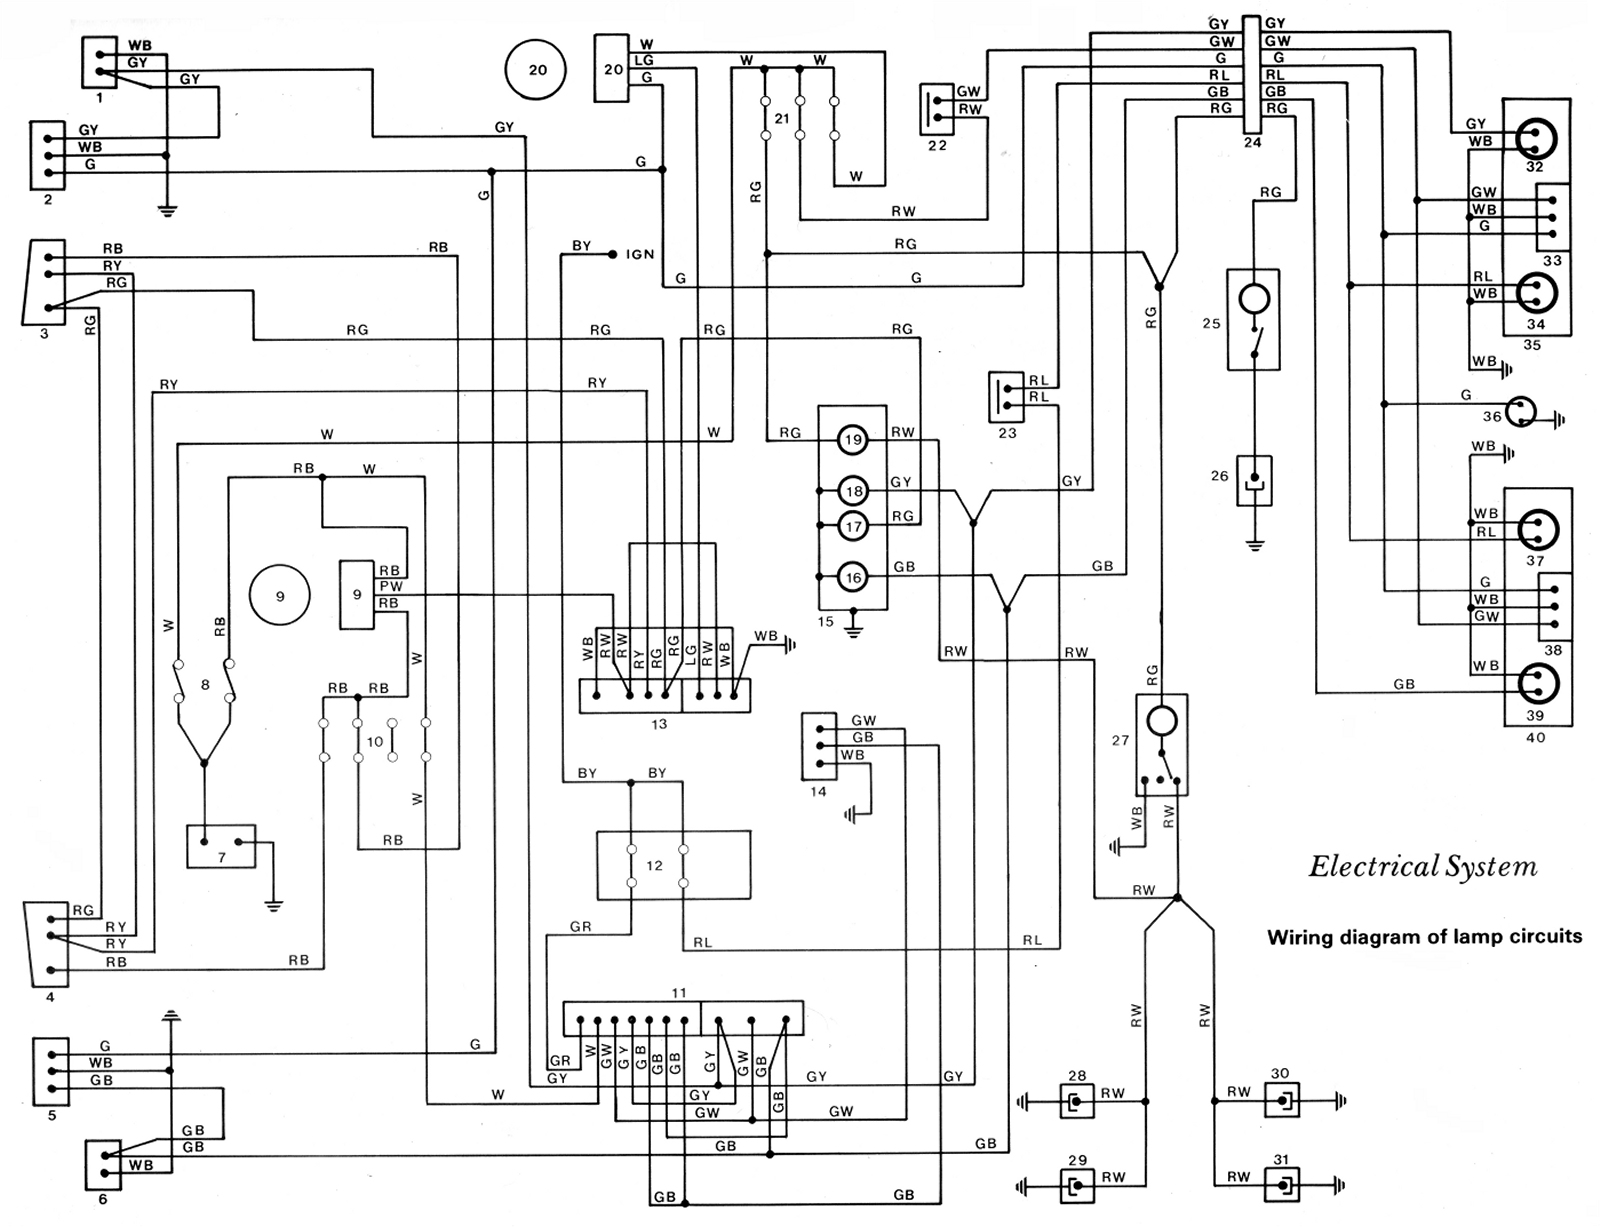 lamp wiring diagram for multiple gfci outlets western star fuse box get free image about